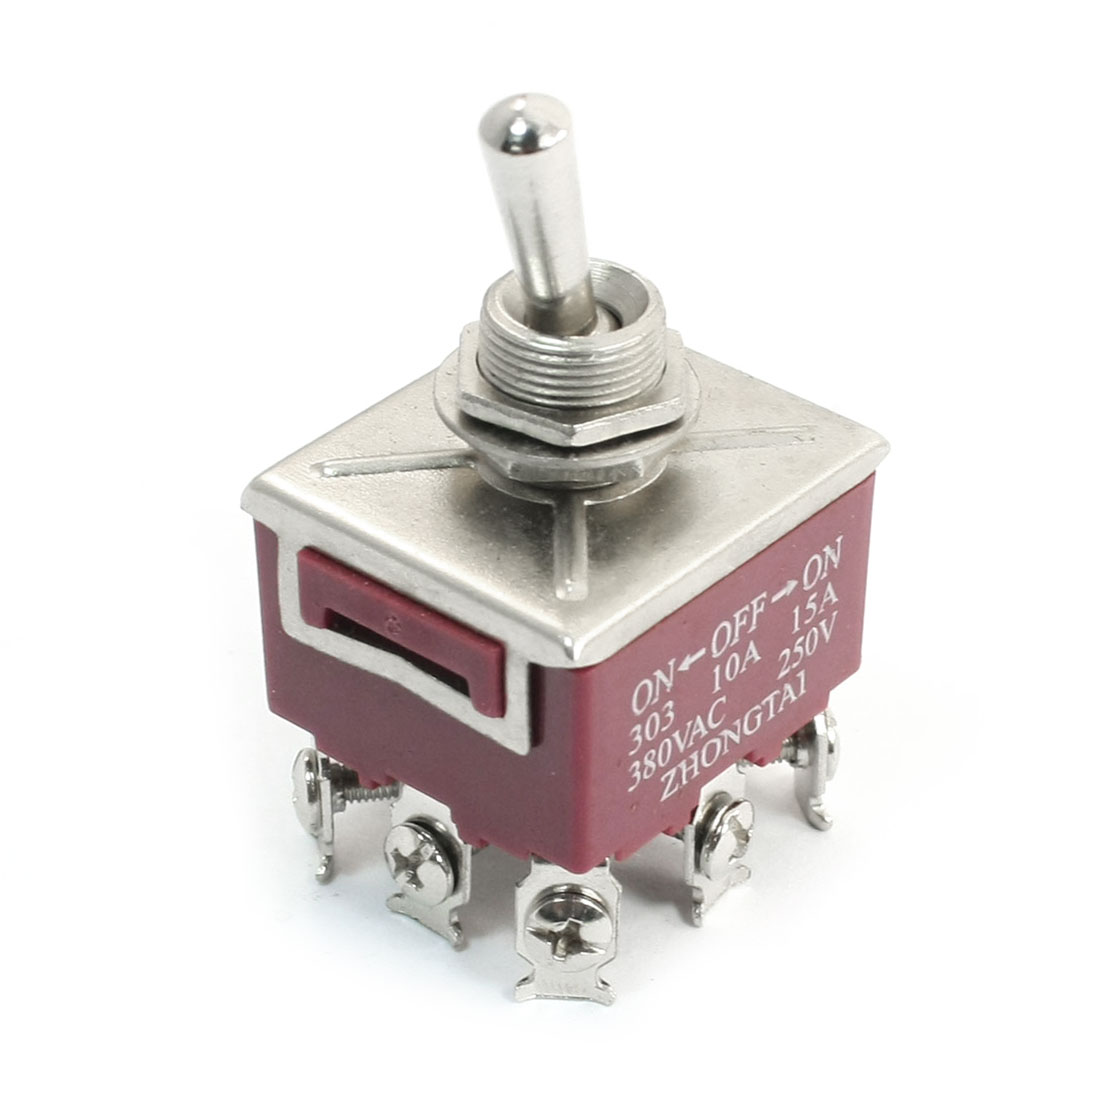 250V 15A 3 Positions ON/OFF/ON 9 Pin 3PDT Self Locking Toggle Switch